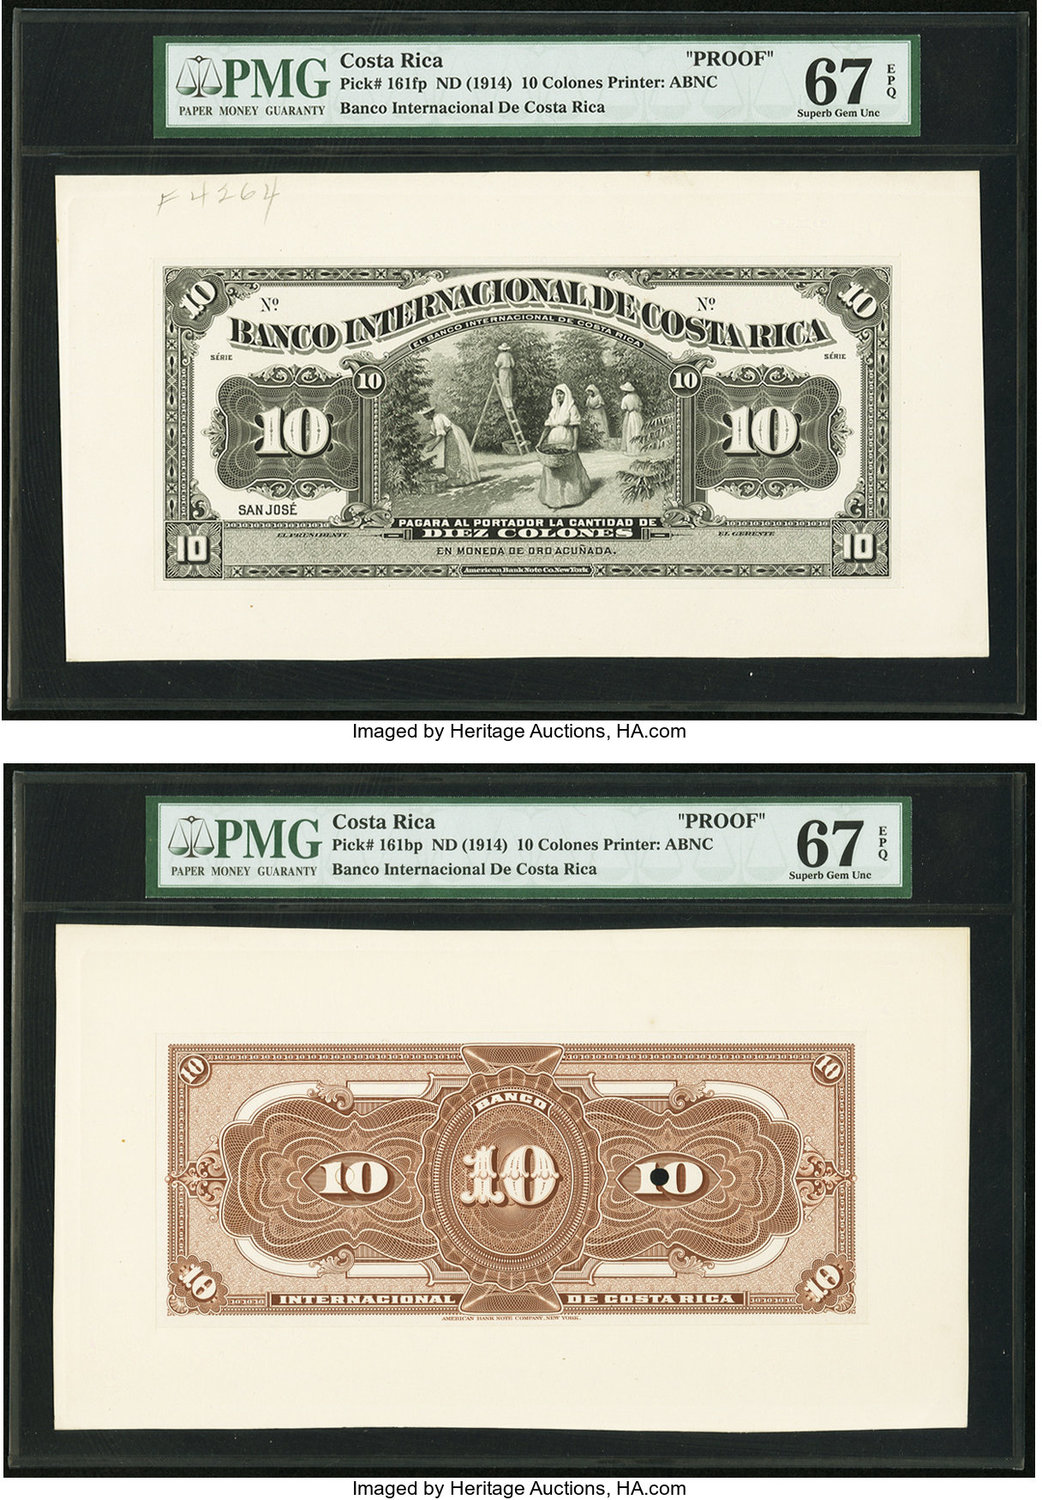 World Currency Costa Rica Banco Internacional De 10 Colones Nd 1914 Pick 161p Face And Back Proofs A